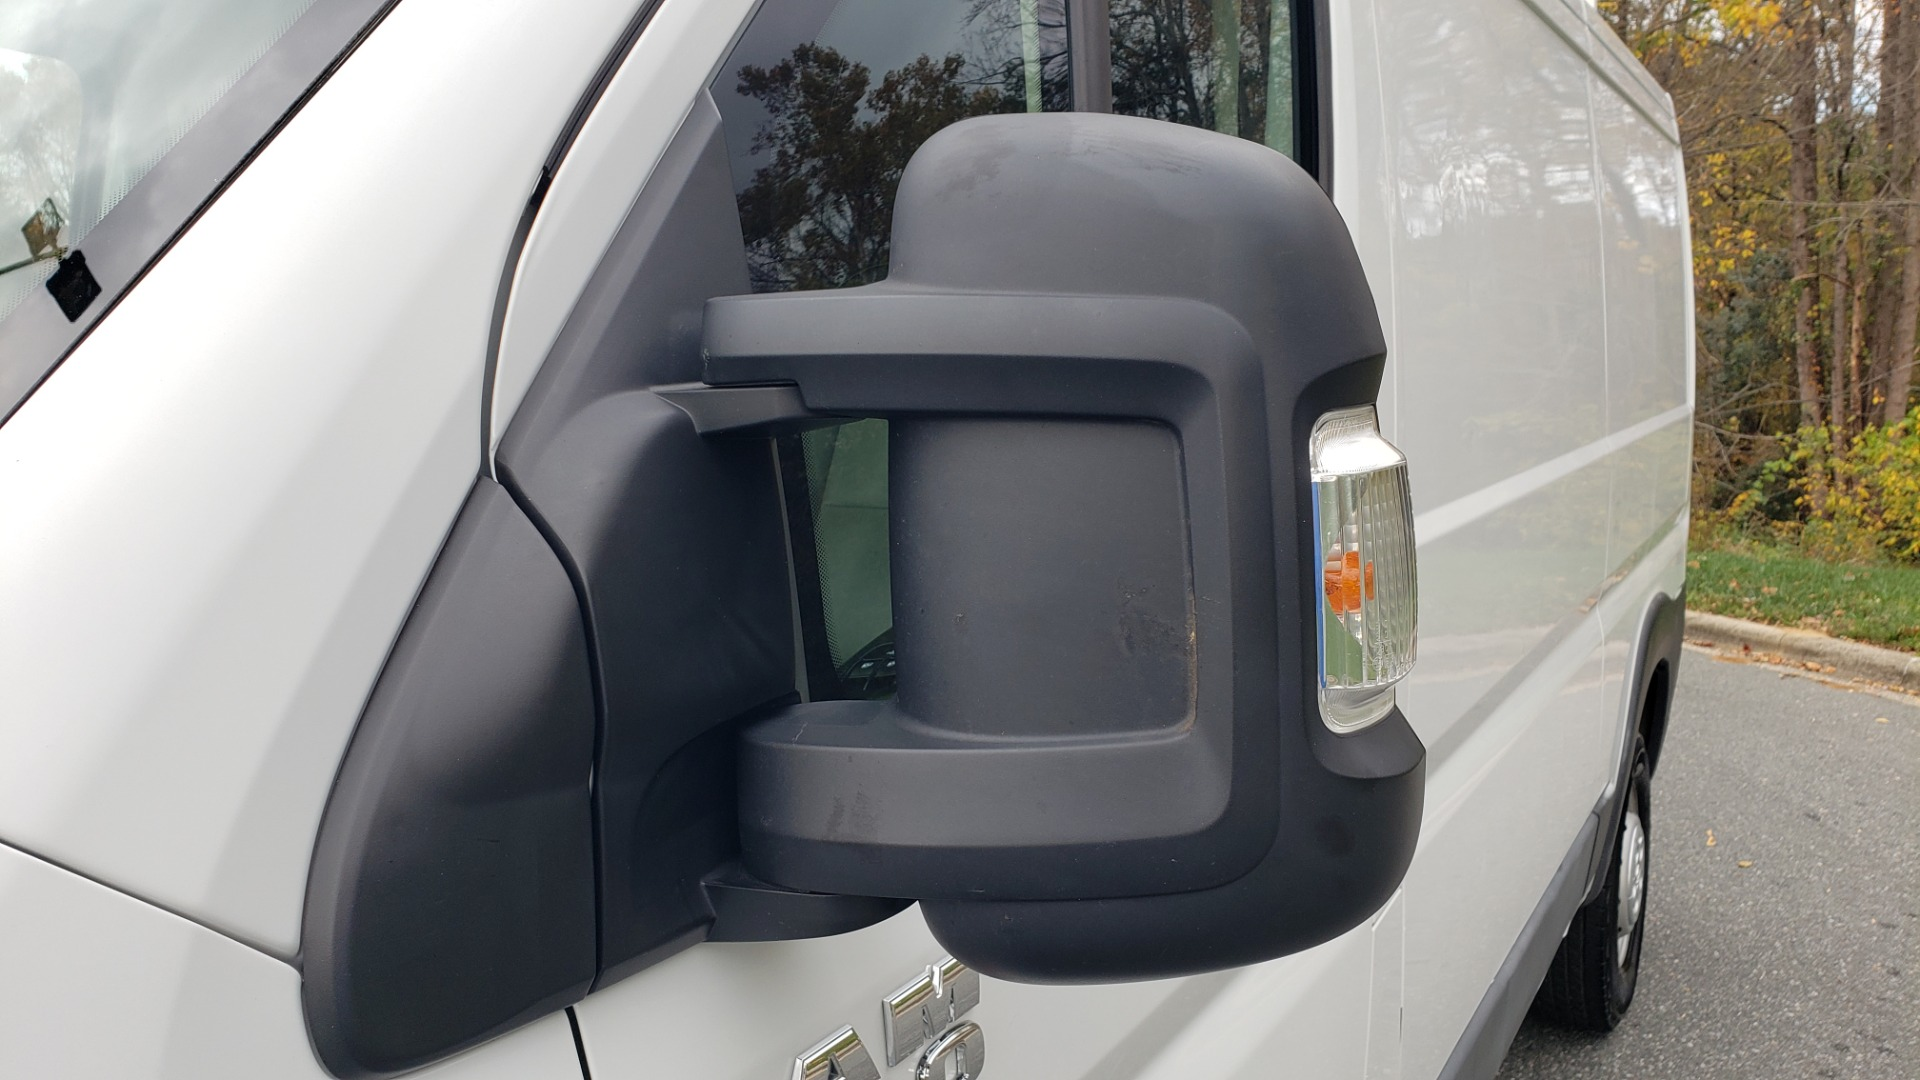 Used 2015 Ram PROMASTER CARGO VAN 136-INCH WB / LOW ROOF / LADDER RACK / INSIDE RACKS for sale $15,995 at Formula Imports in Charlotte NC 28227 18